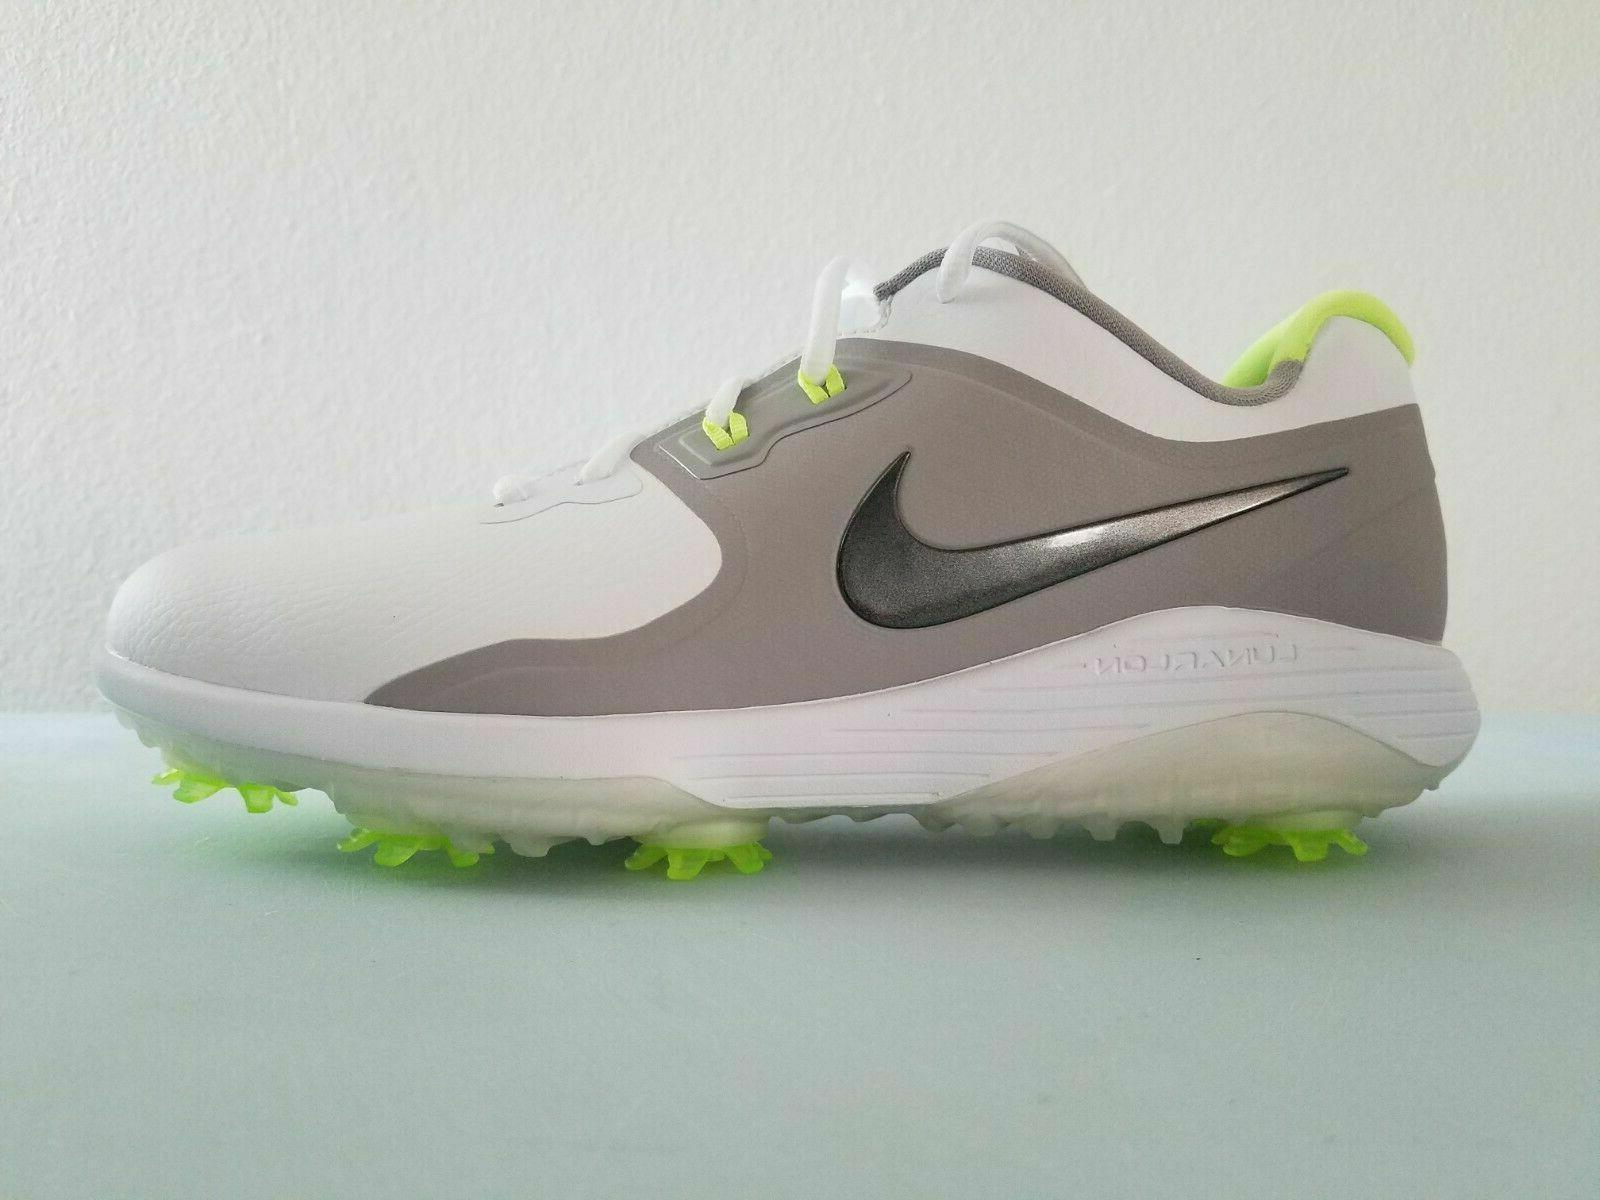 NIKE VAPOR PRO GOLF SHOES MENS SIZE 10 WHITE GREY VOLT AQ219